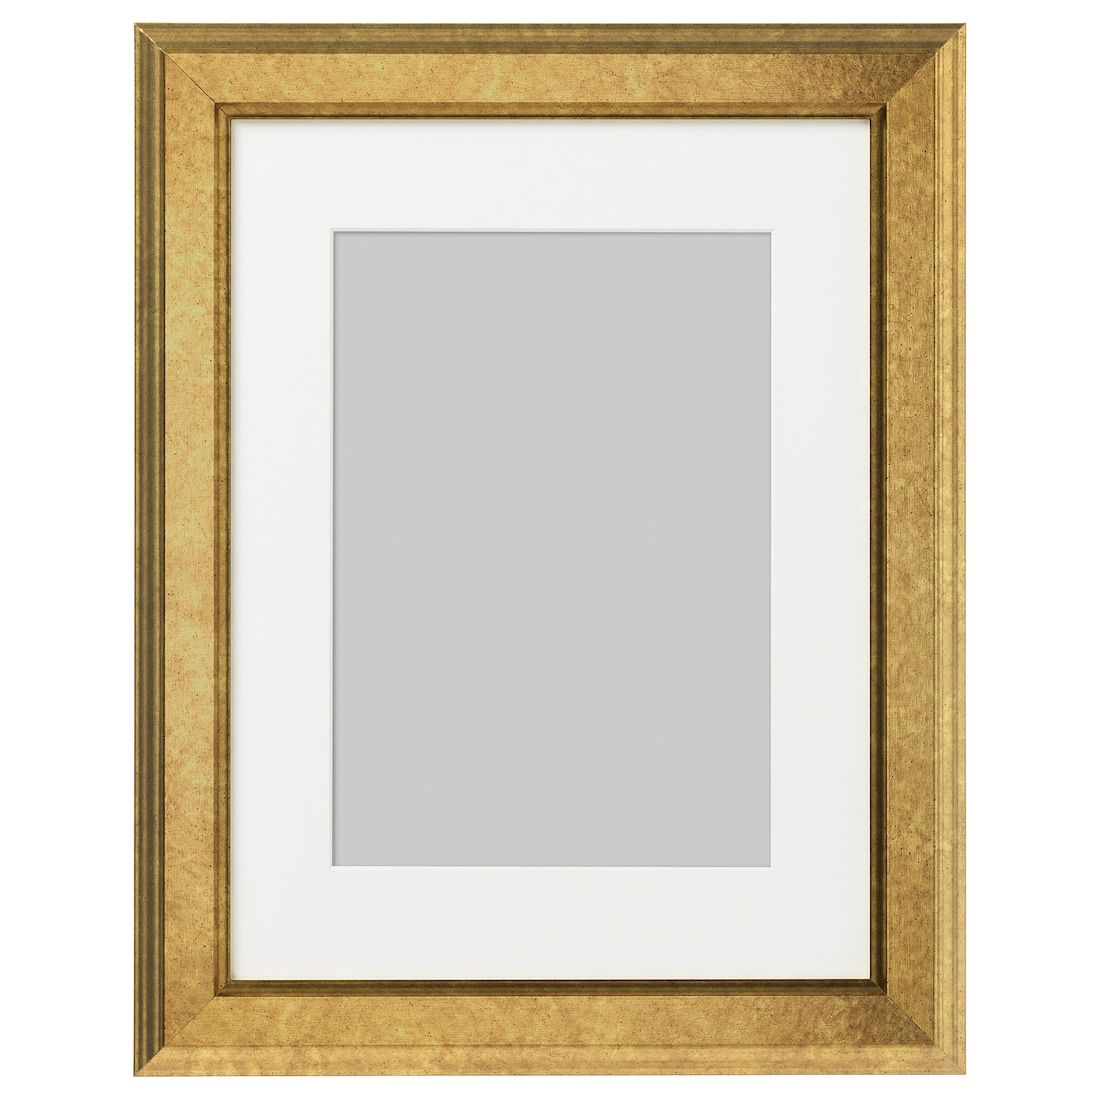 Virserum Frame Gold 12x16 Picture Frame Wainscoting Hanging Wall Art Picture Frames